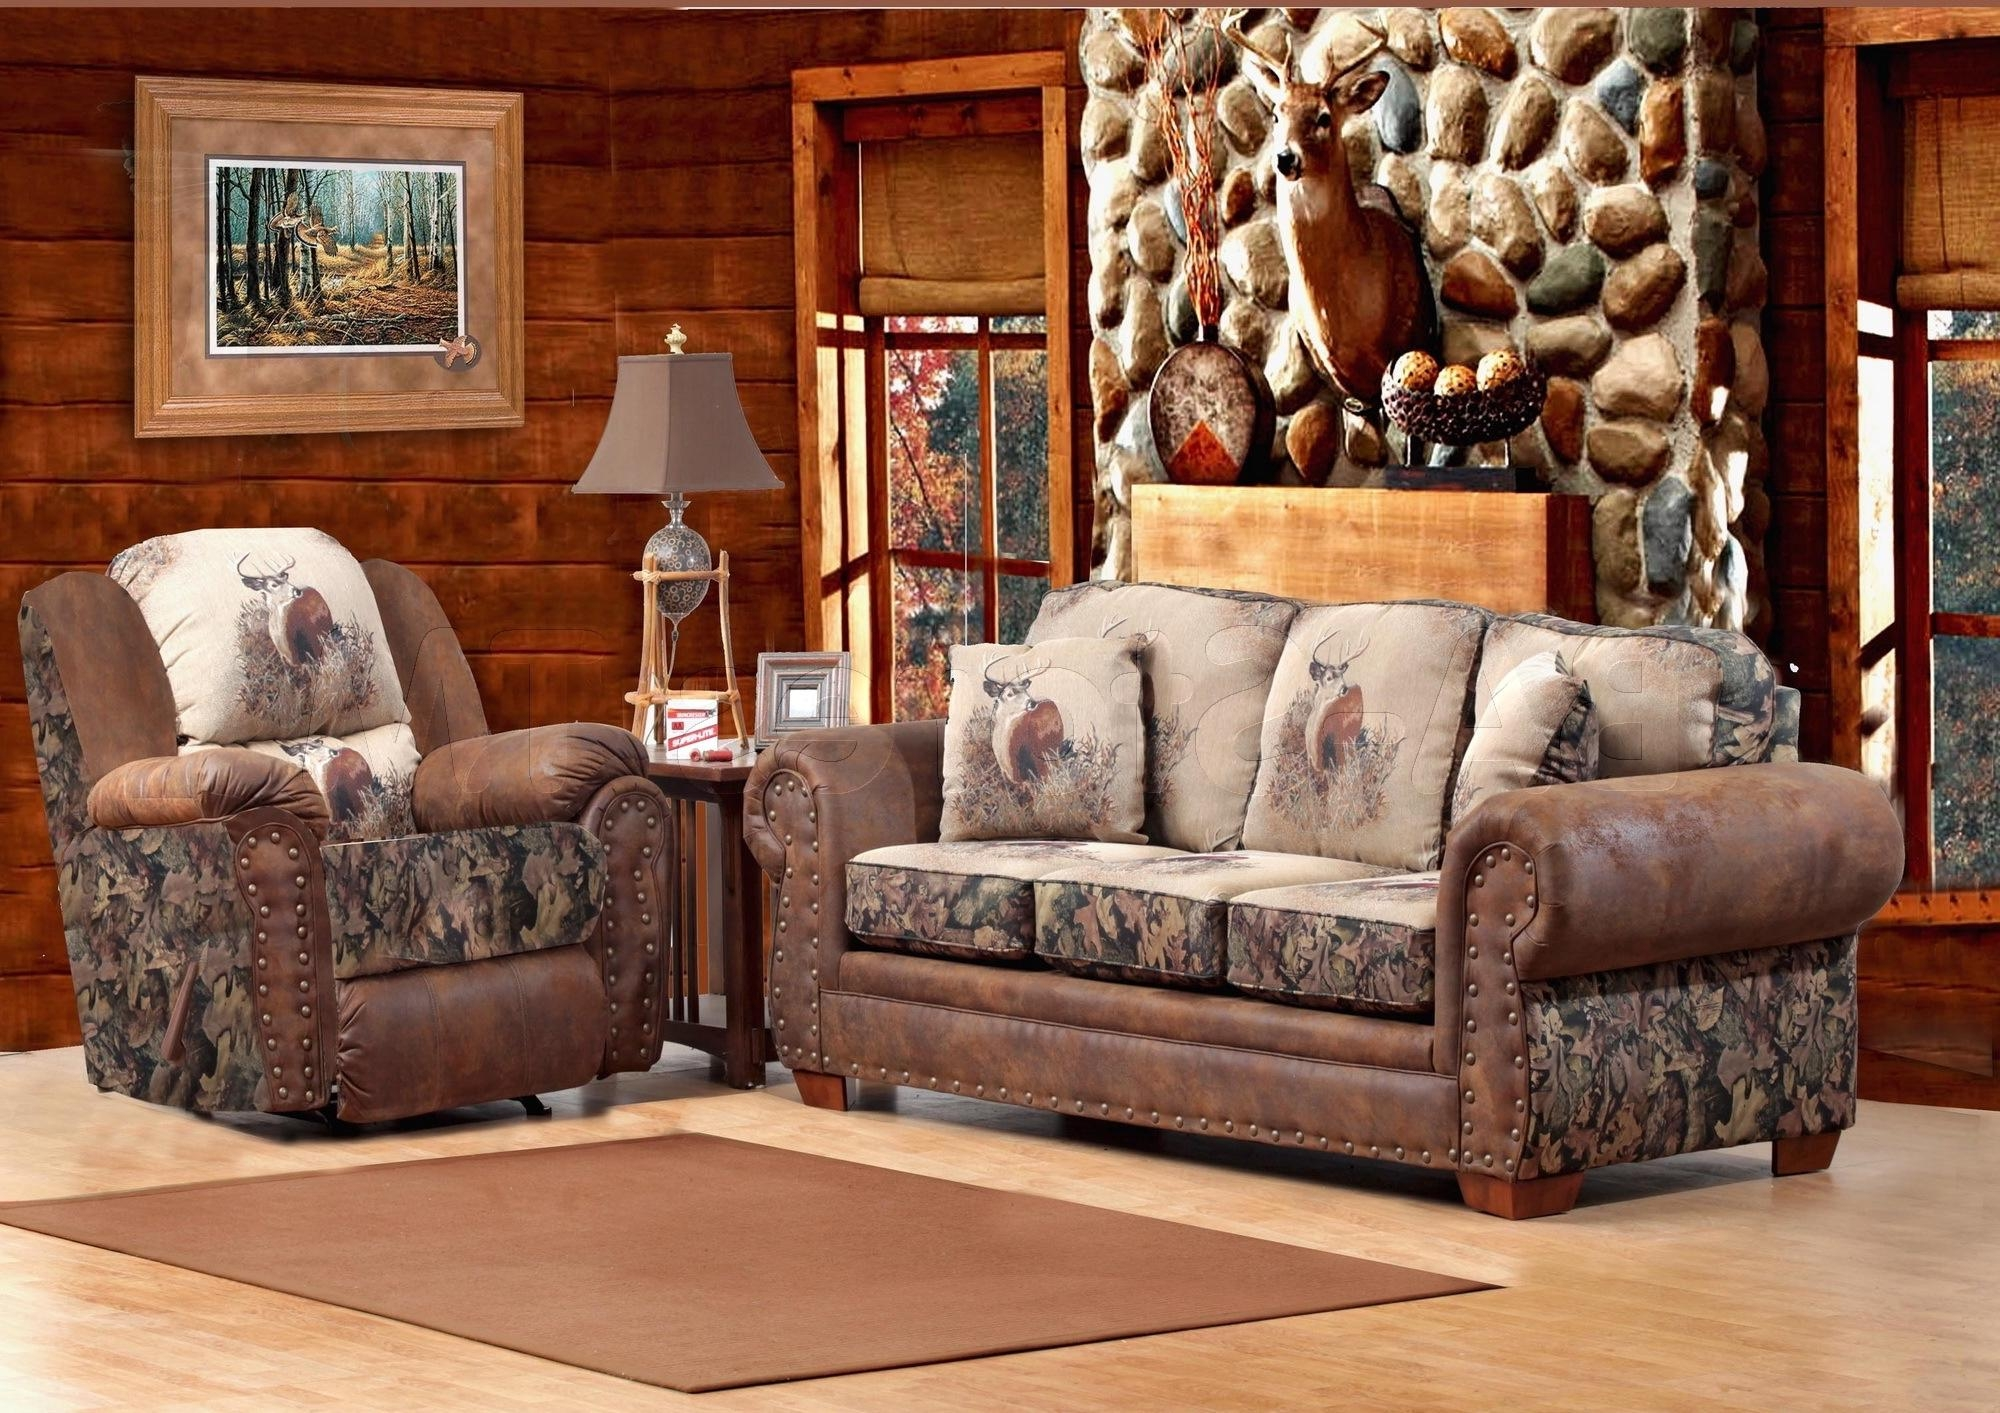 Camo Living Room Ideas Set From Aarons Nadine Sofa Sachi Camo New Pertaining To Camo Reclining Sofas (Image 3 of 20)